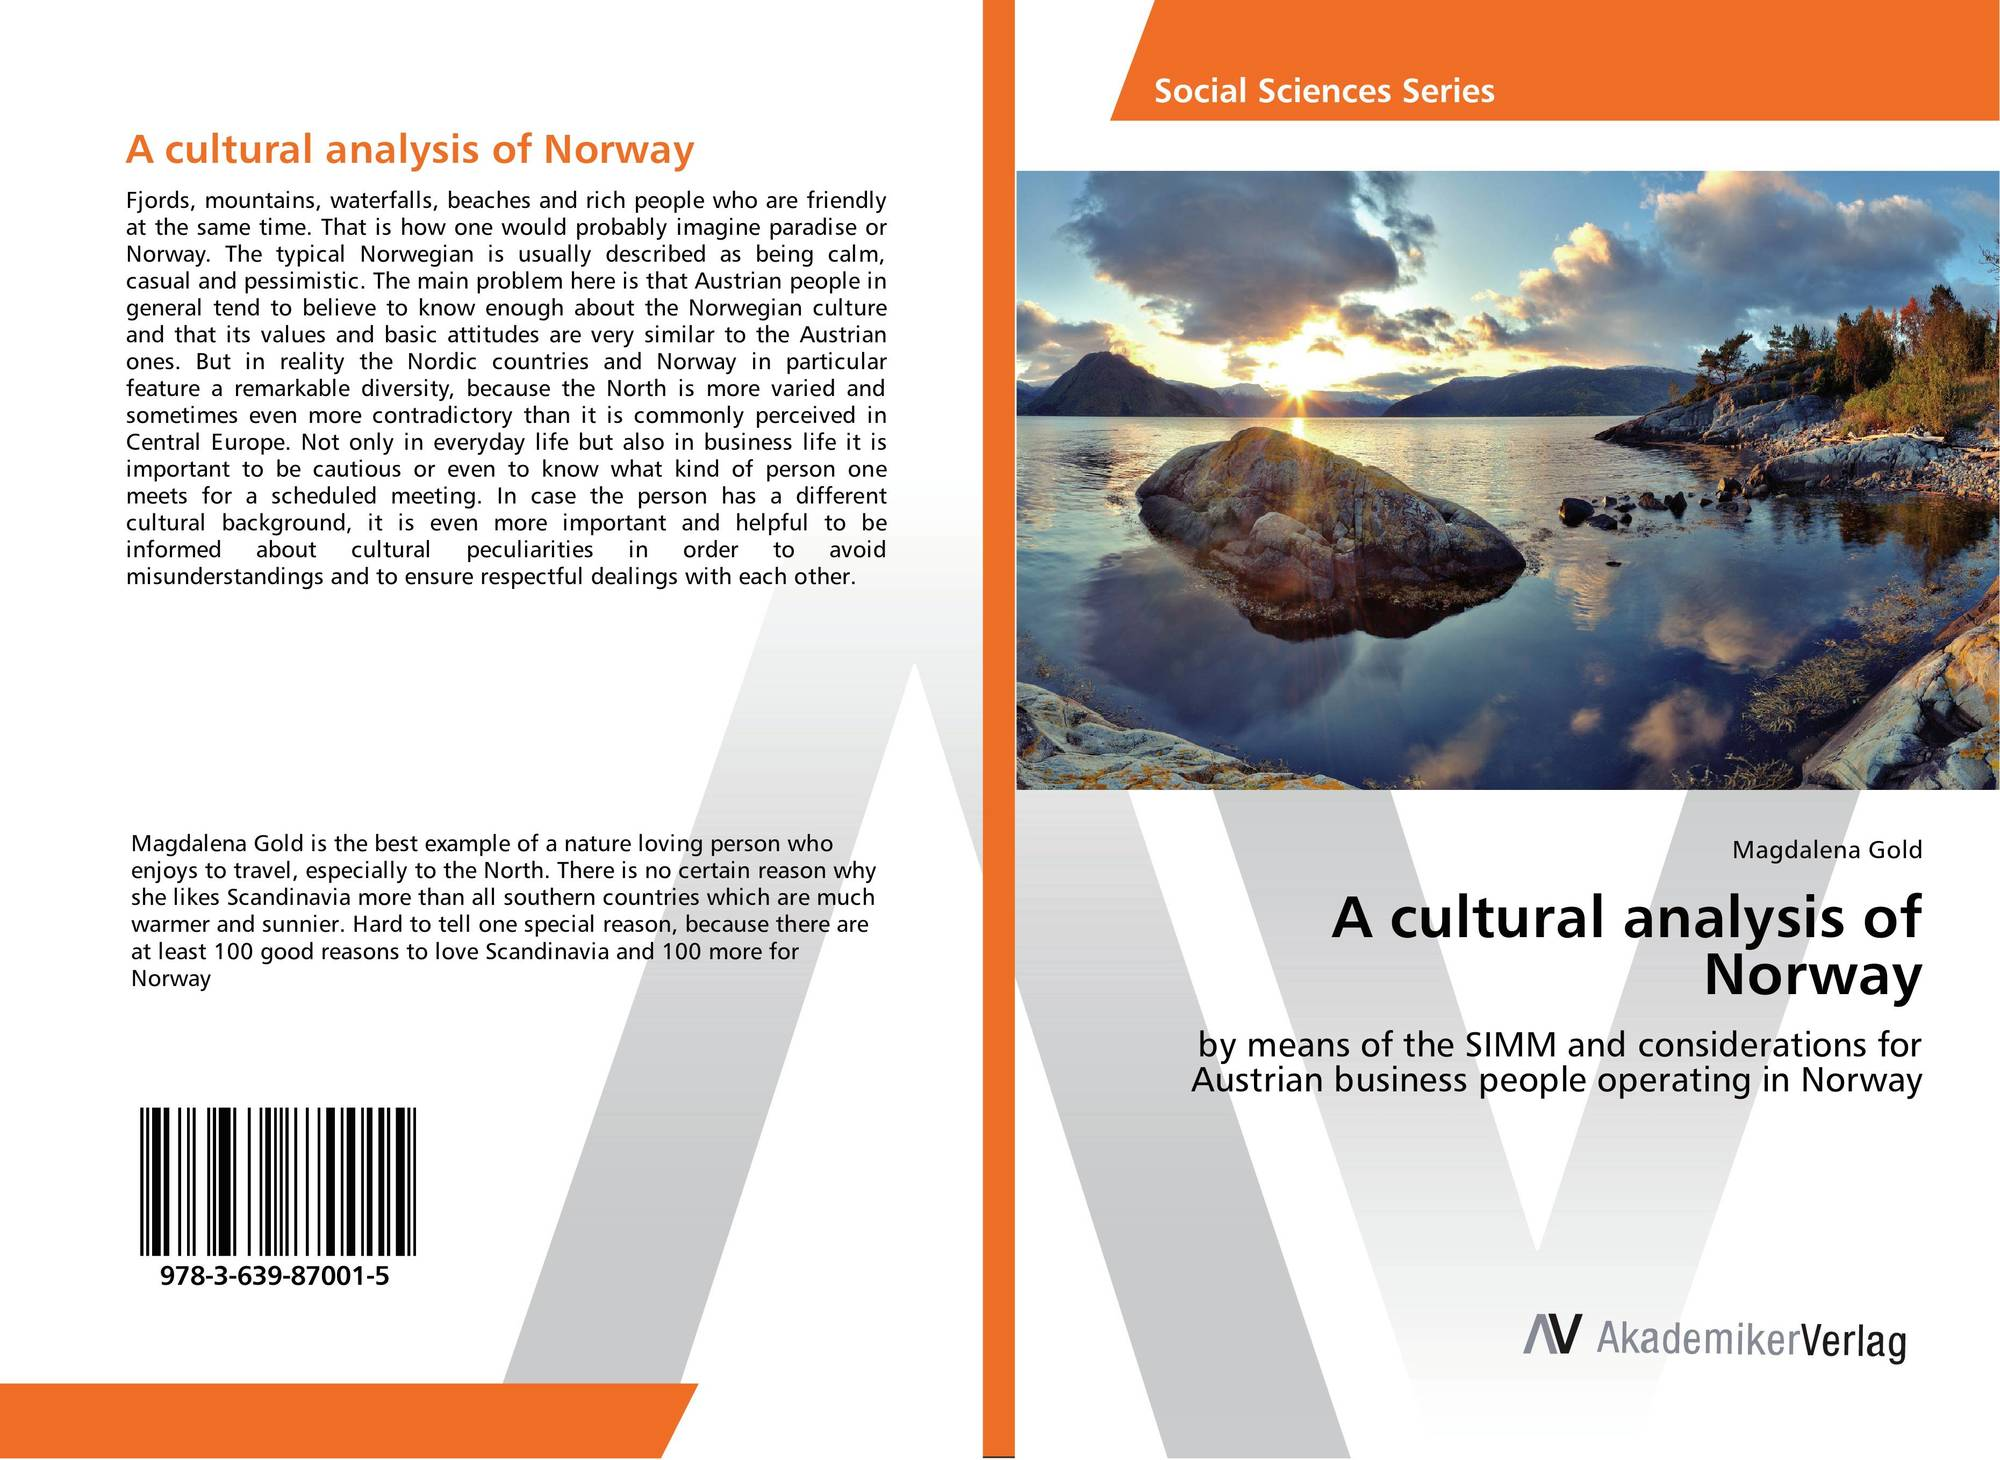 A cultural analysis of Norway, 978-3-639-87001-5, 3639870018